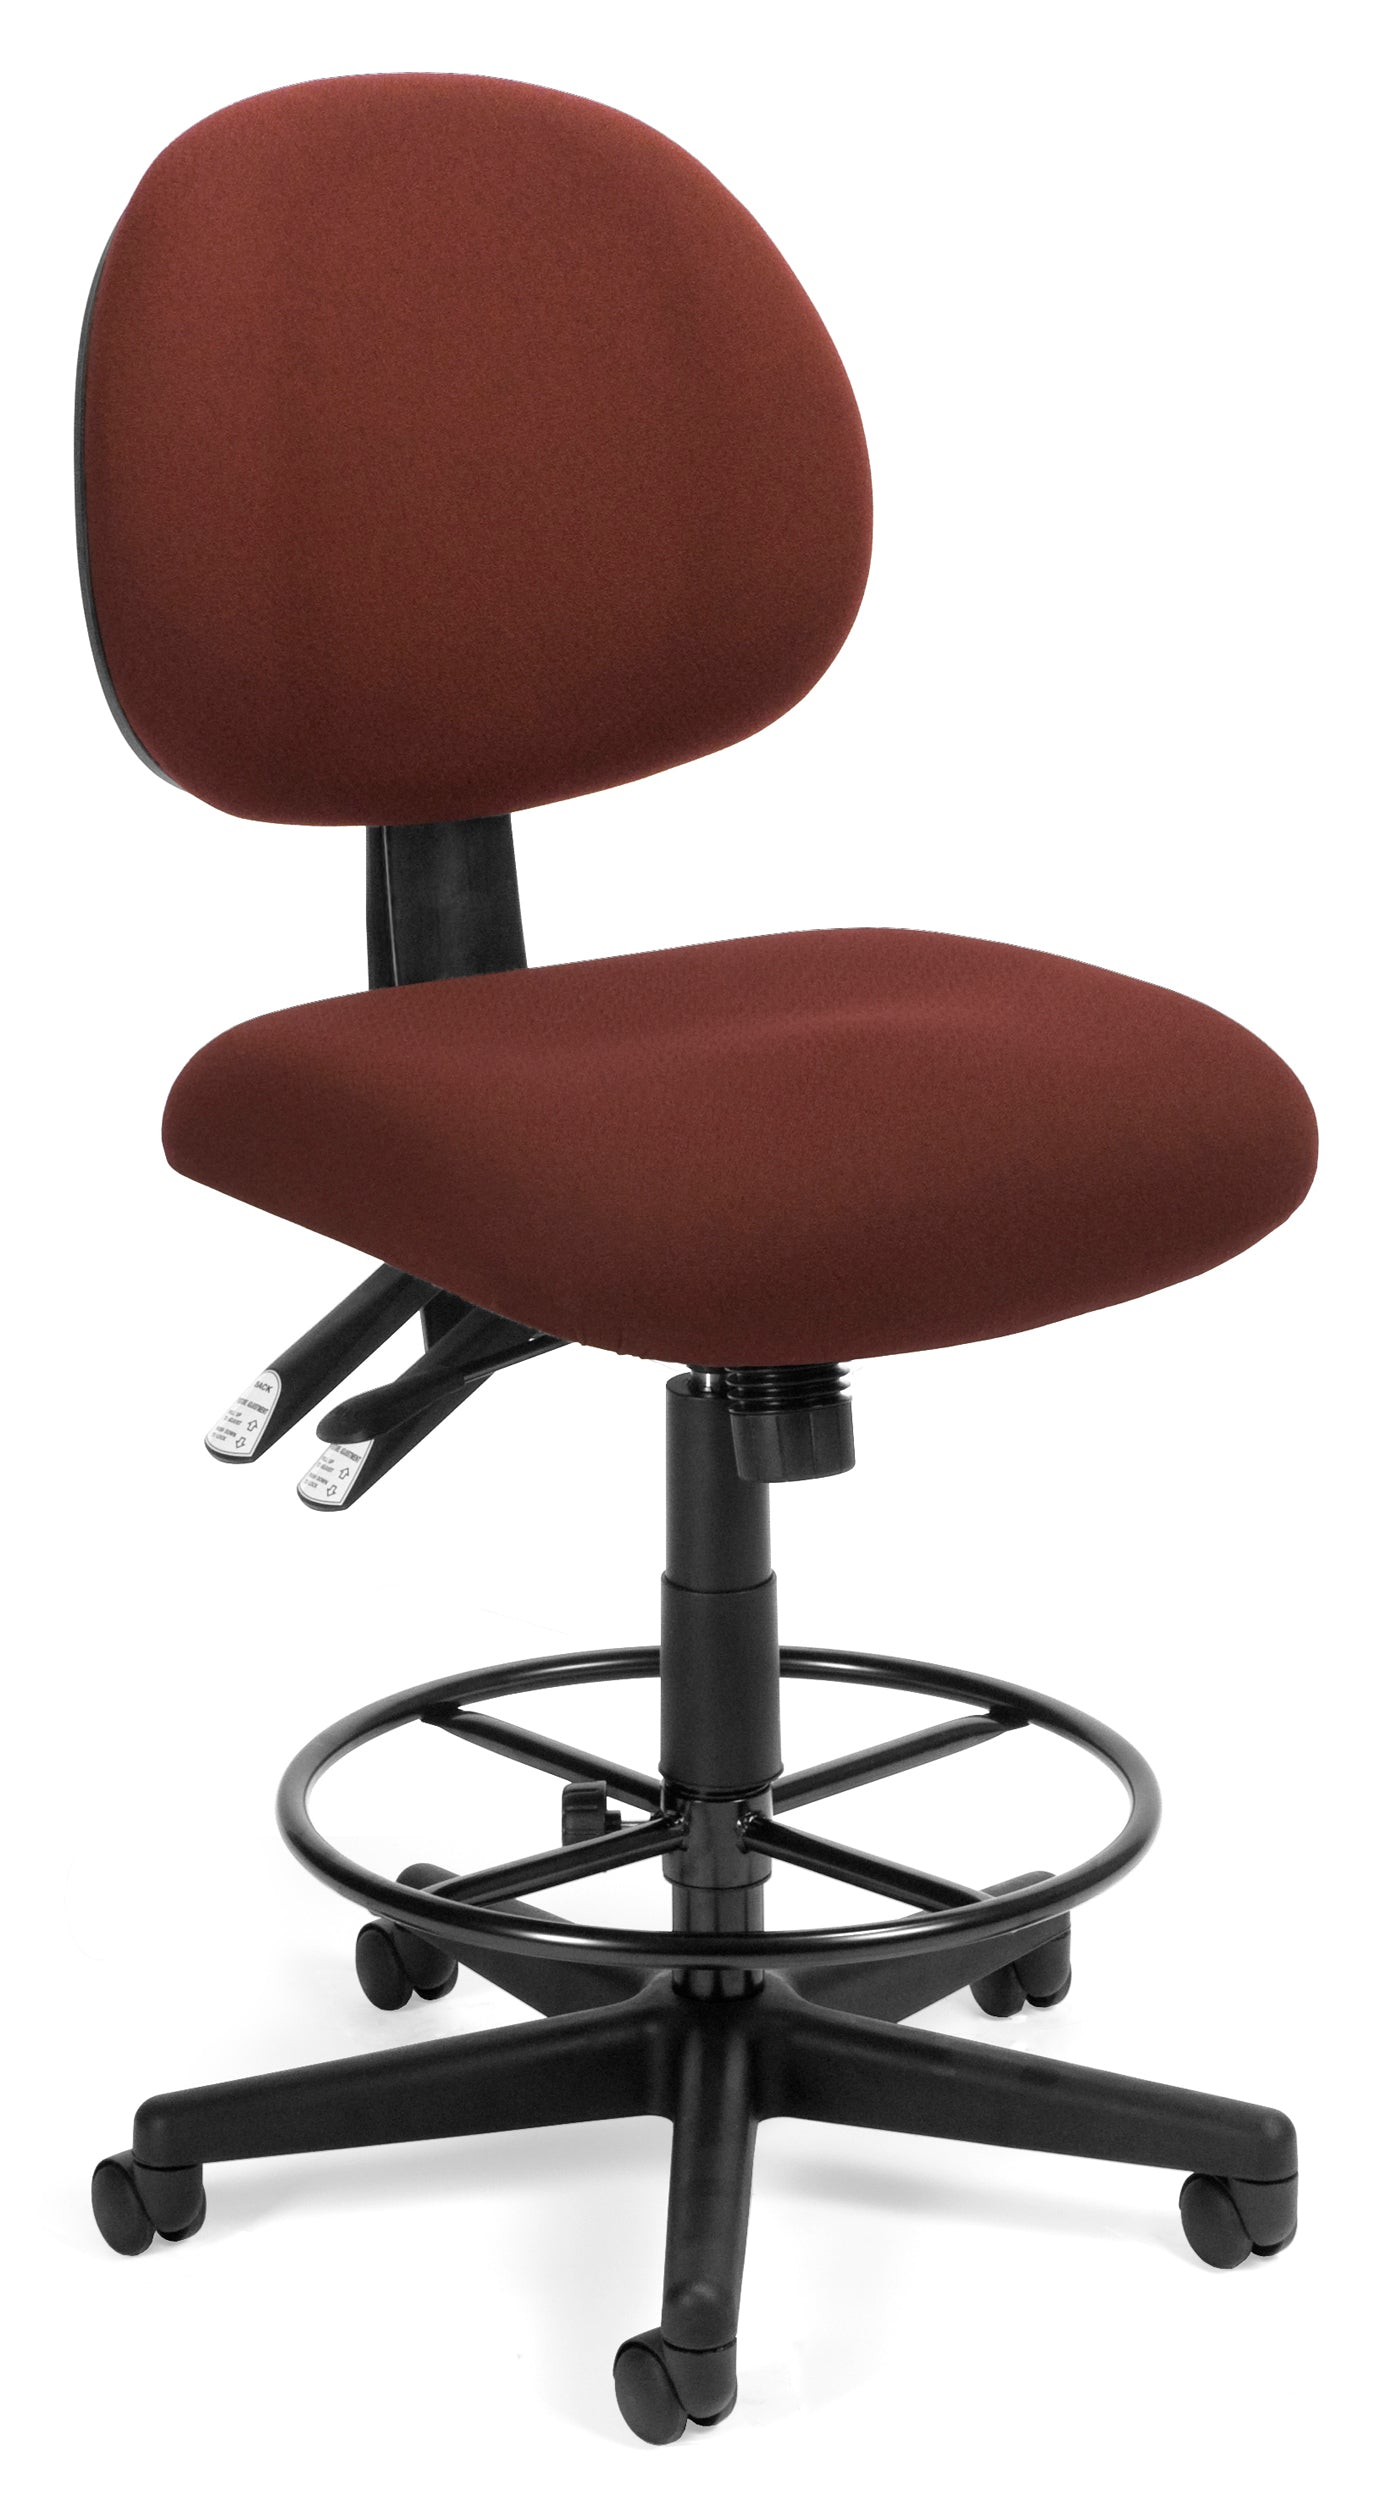 Ergonomic Multi-Adjustable Upholstered Armless Drafting Kit Task Chair